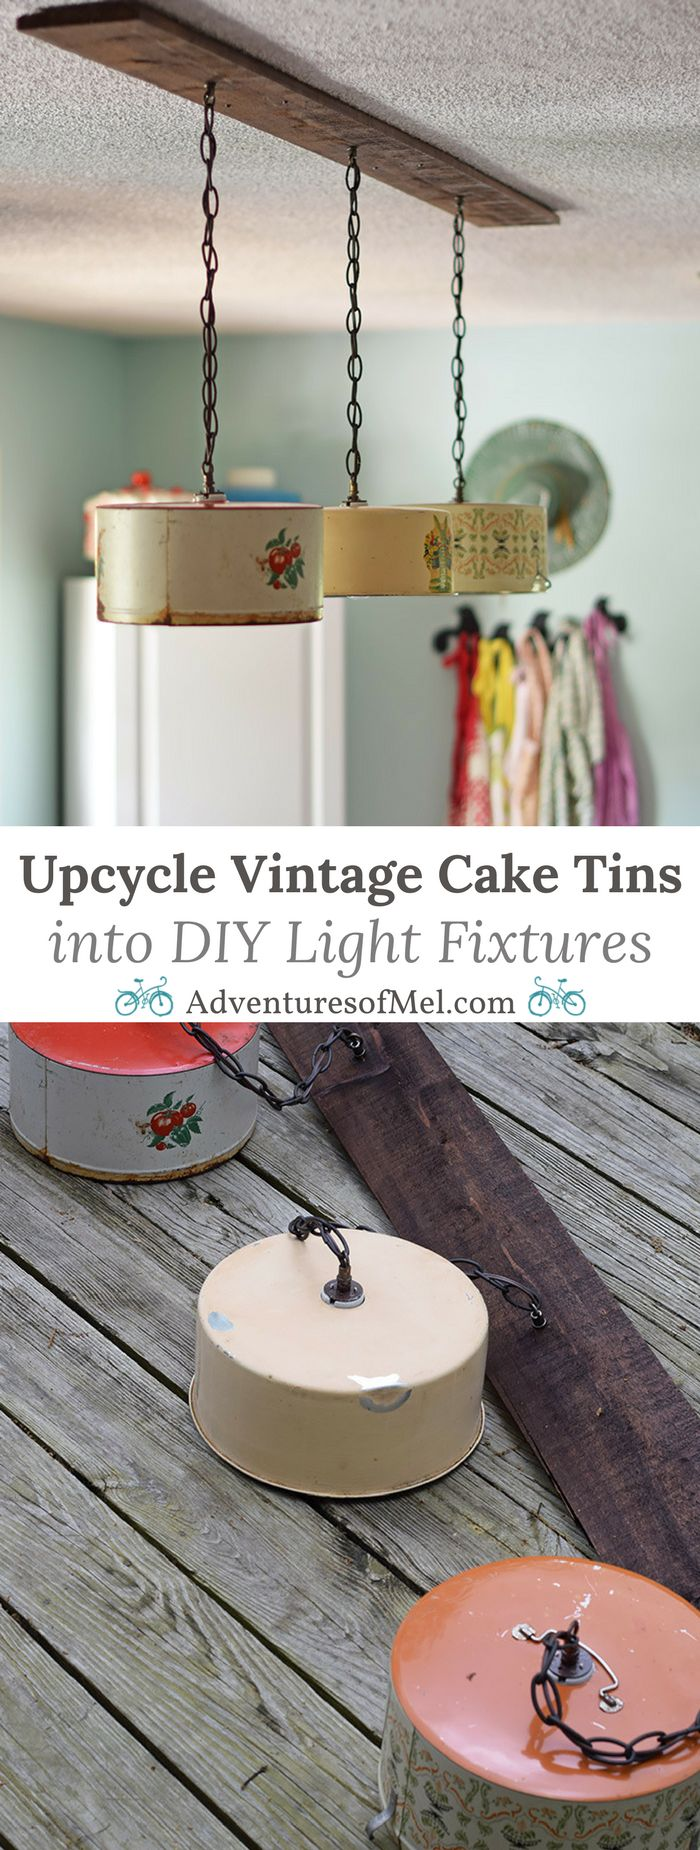 Create a farmhouse kitchen look with DIY light fixtures upcycled from vintage cake tins. How to create a charming look with affordable and simple kitchen lighting.